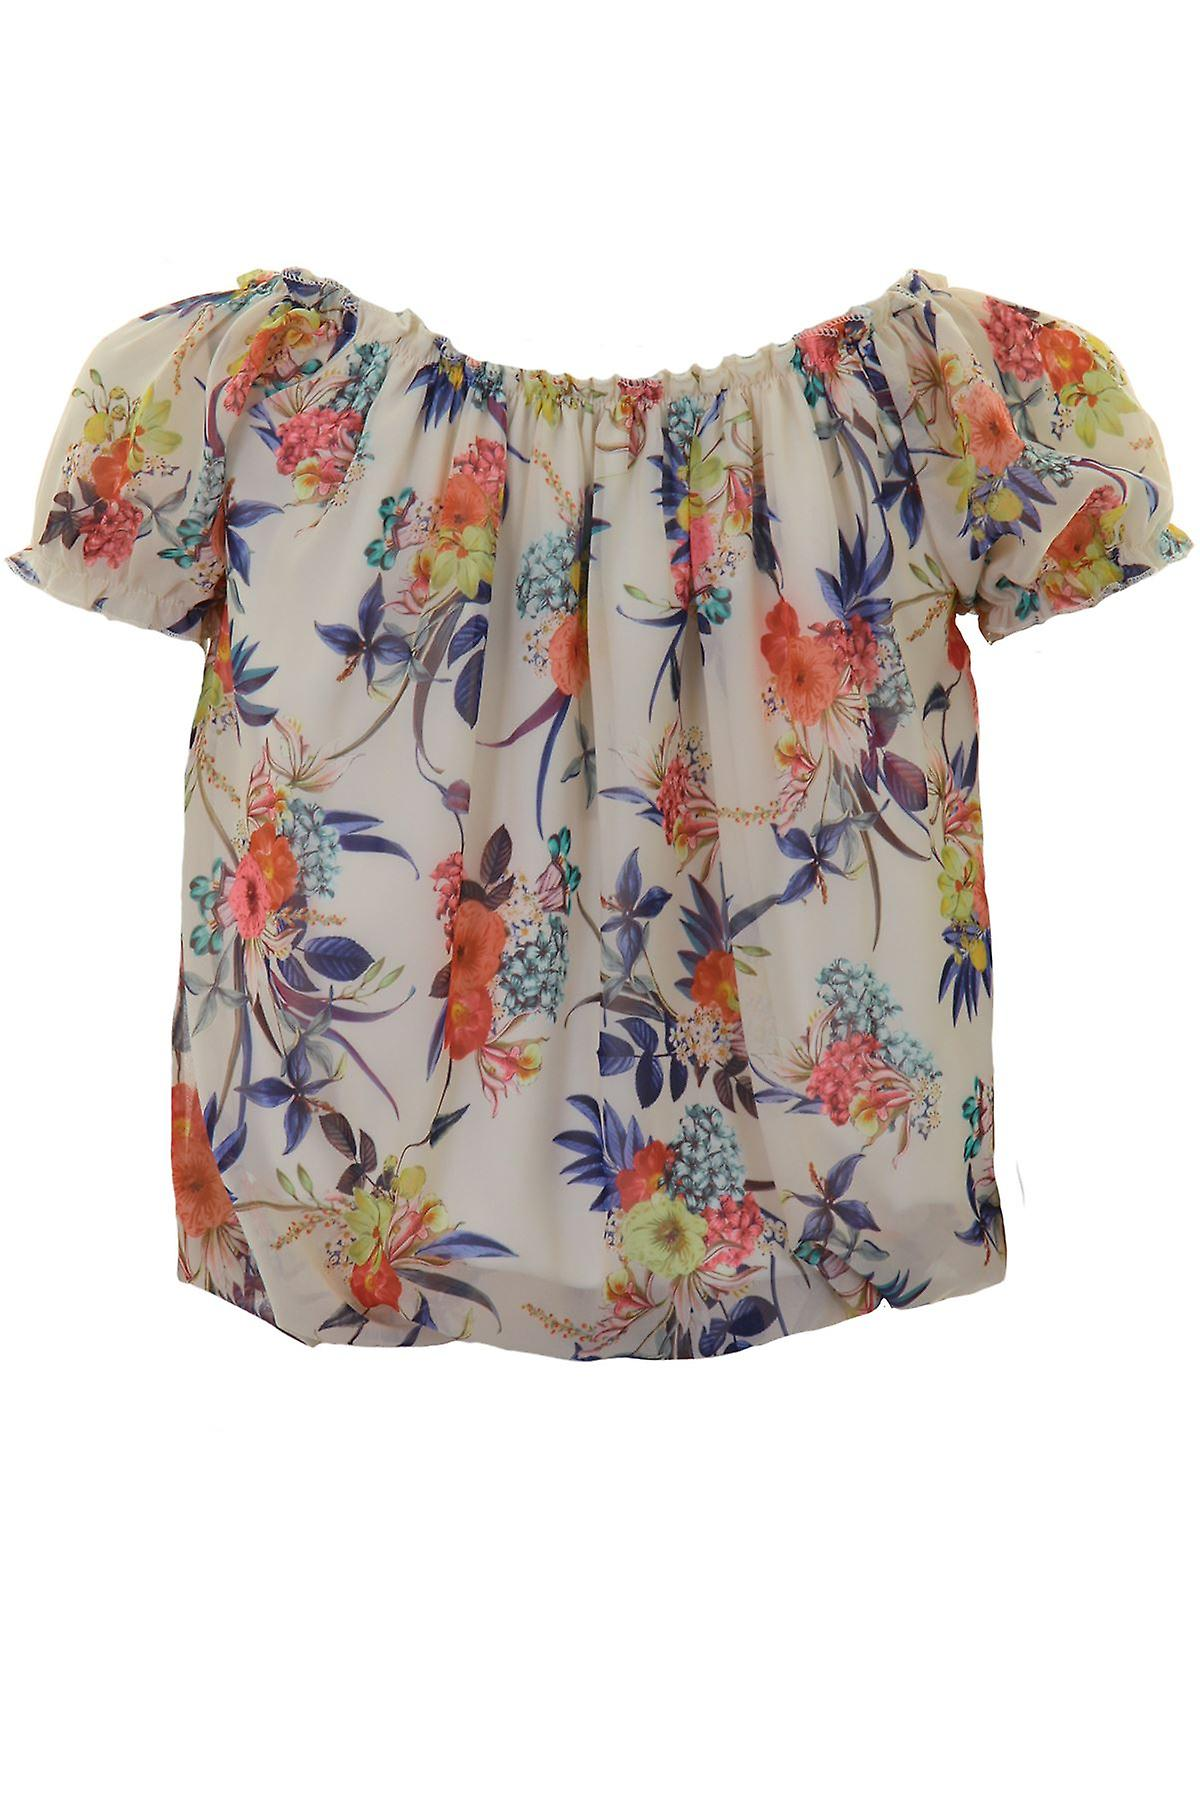 Ladies Short Sleeve Chiffon Lined Floral Elasticated Hem Trim Smart Blouse Top